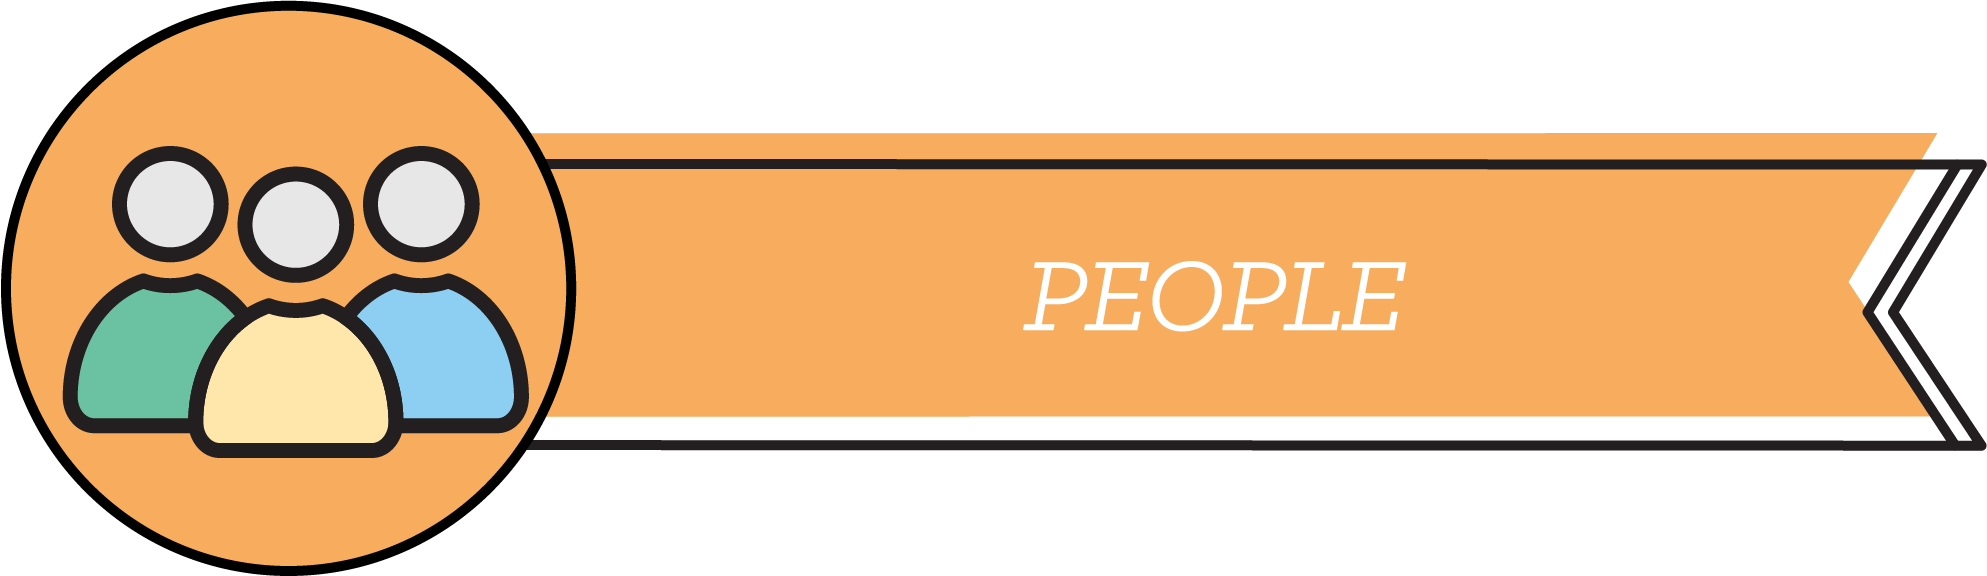 People Concept